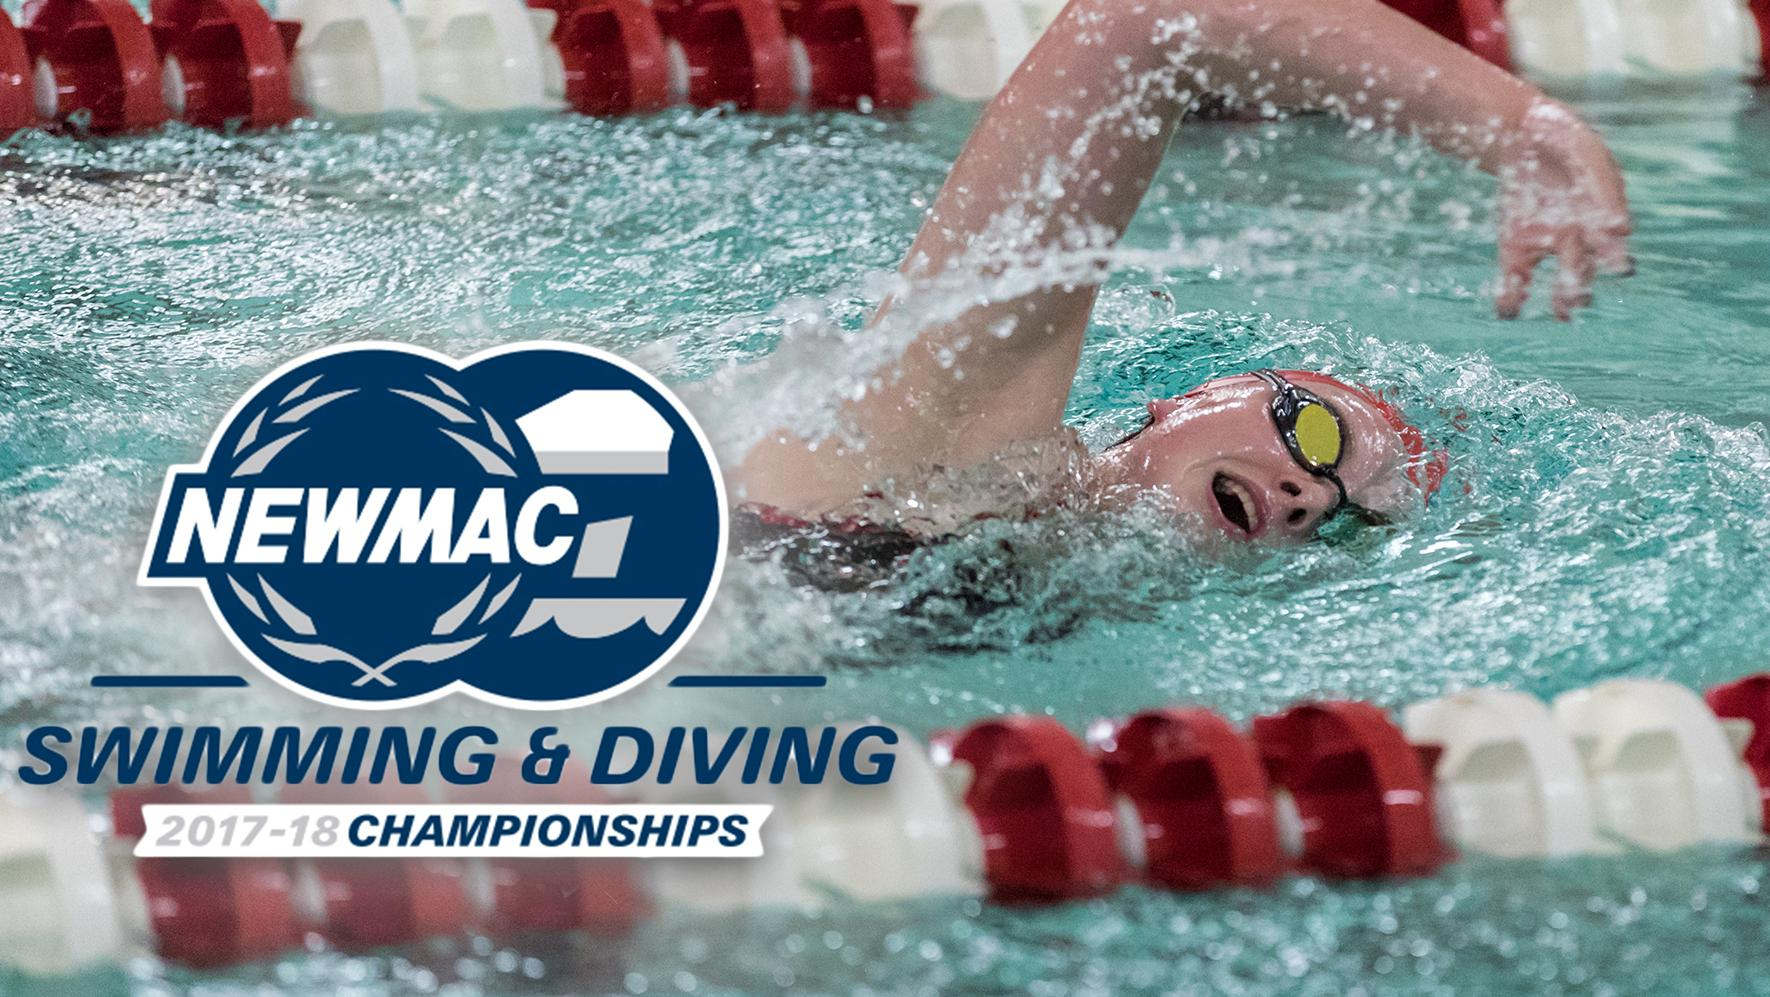 Women's Swimming and Diving NEWMAC Championship Preview